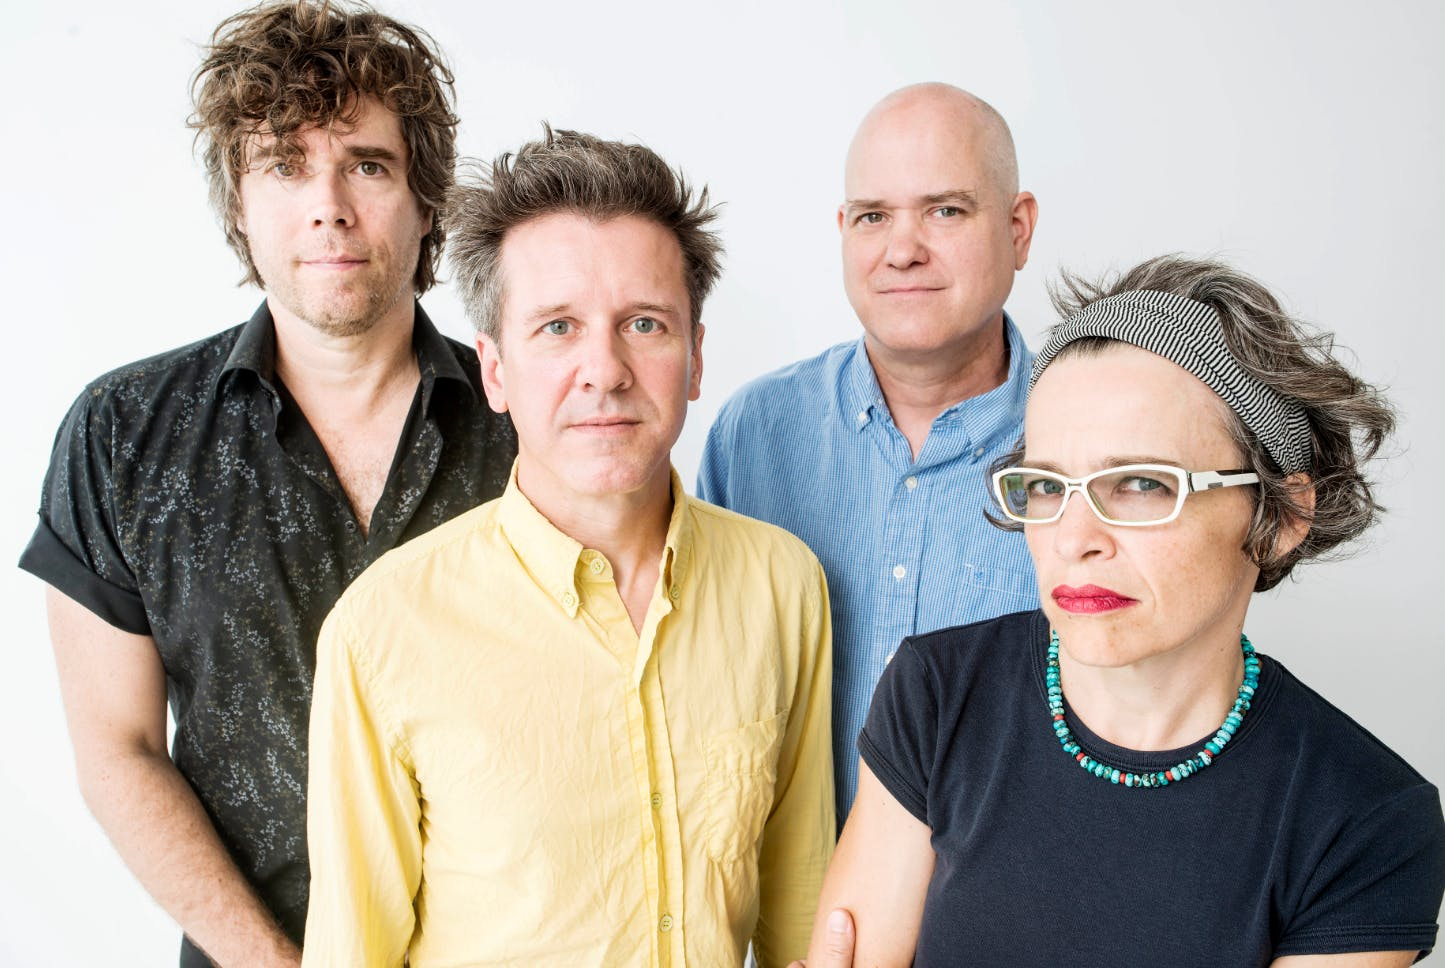 Superchunk with Negative Scanner